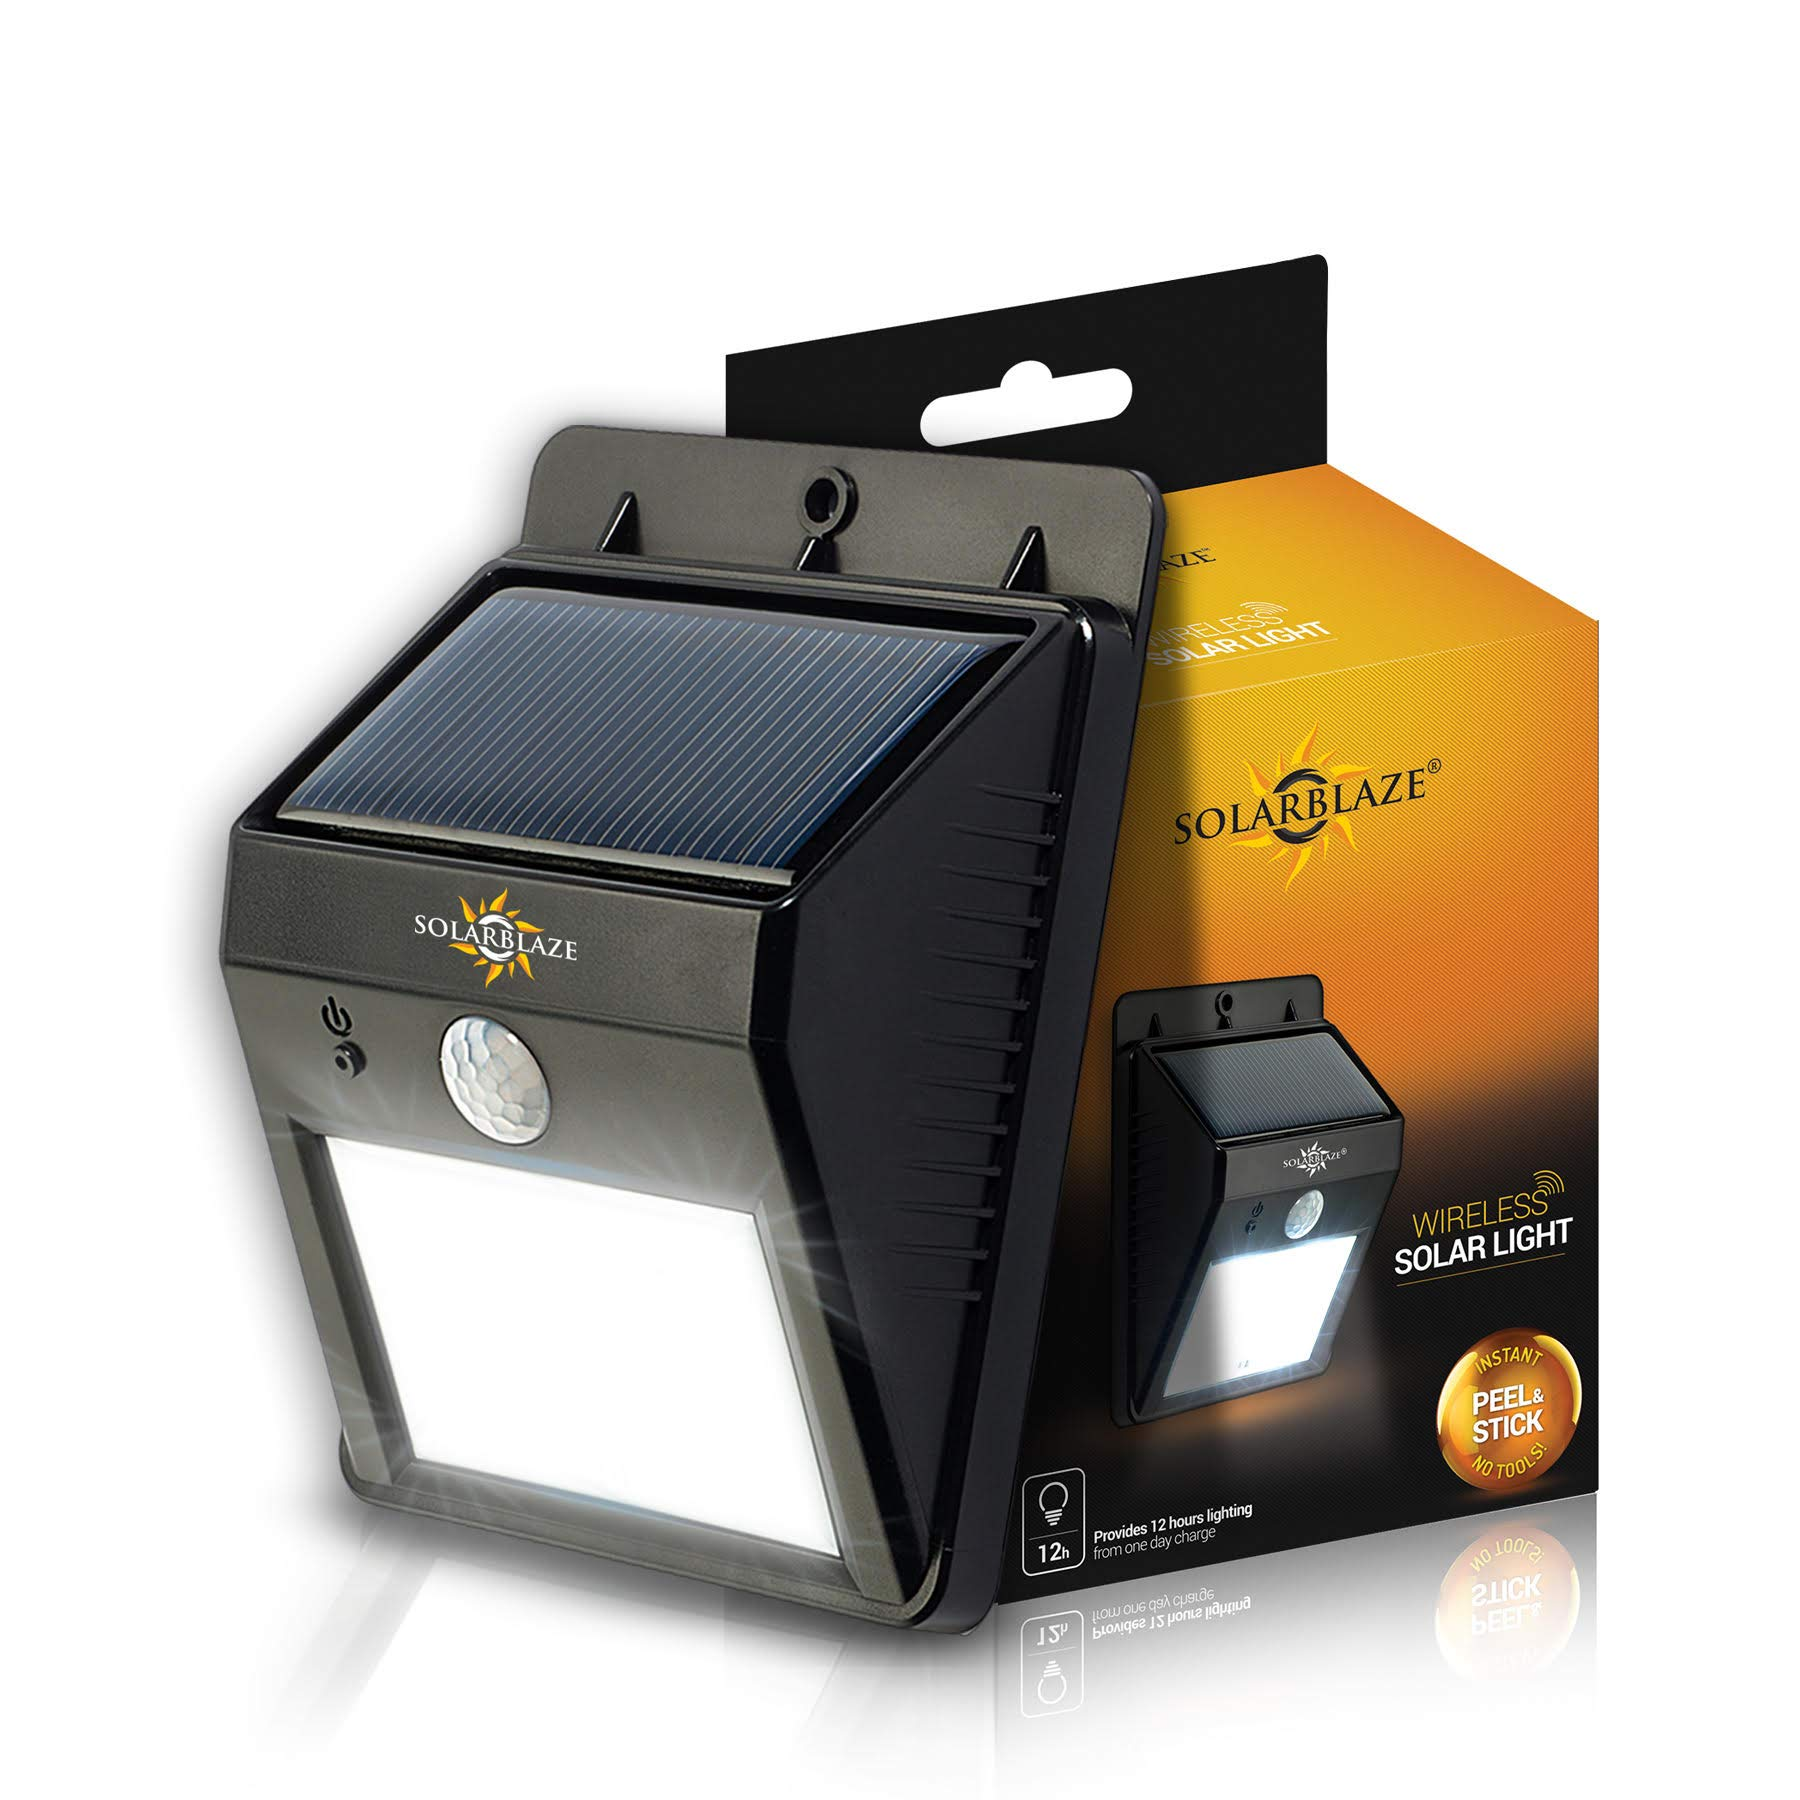 SOLARBLAZE Solar lights Super Bright LED Security Lighting Outdoor |motion sensor wireless security lighting NO TOOLS Easy Peel 'N Stick lights for patio, outside, wall, stairs, home, RV, deck